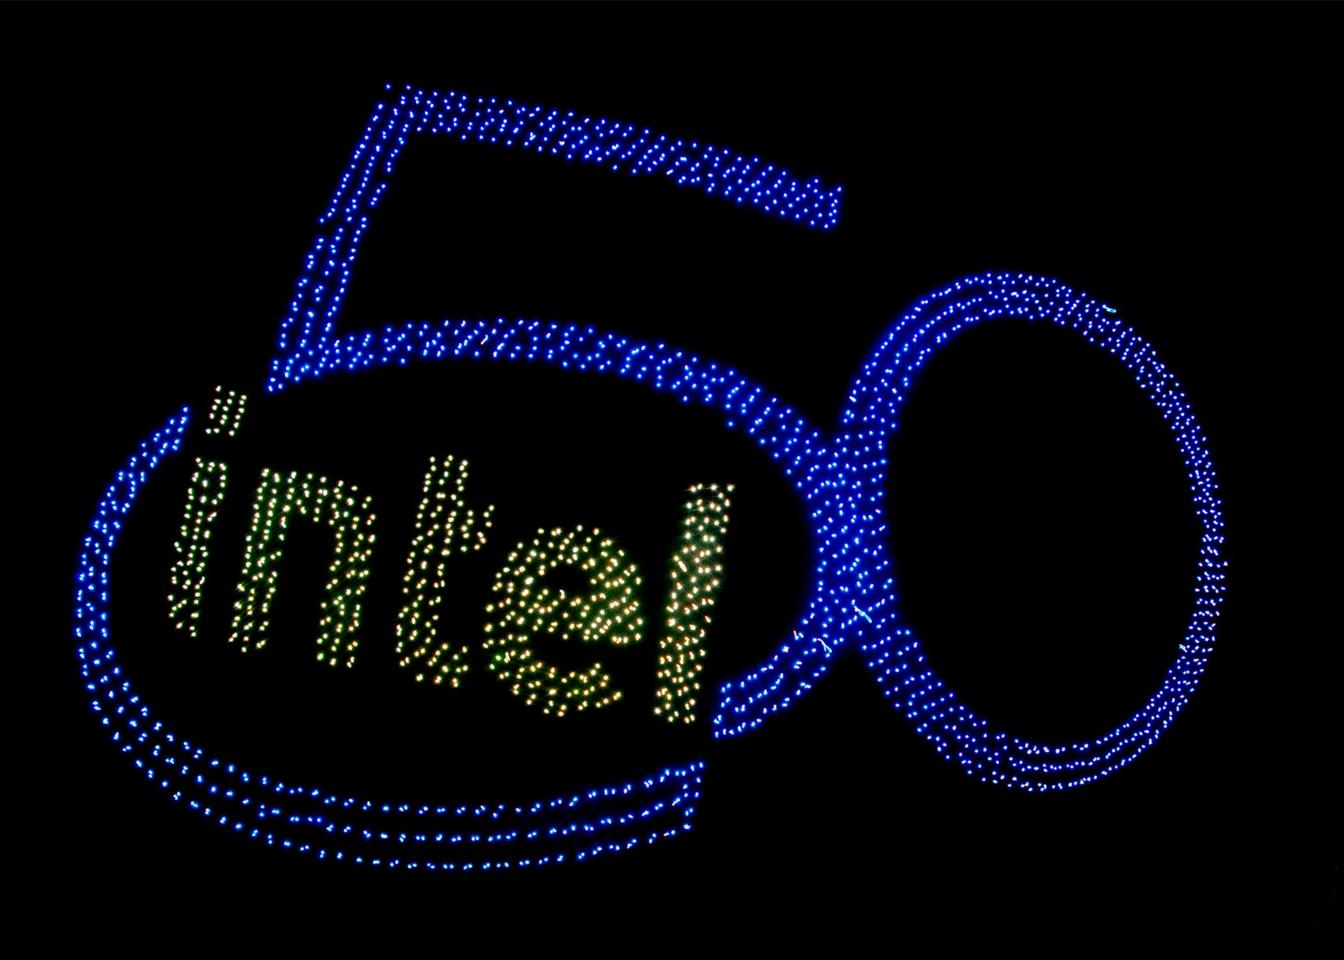 The 2,018 drones that took part in Intel's 50th birthday celebrations took the shape of the company's logo